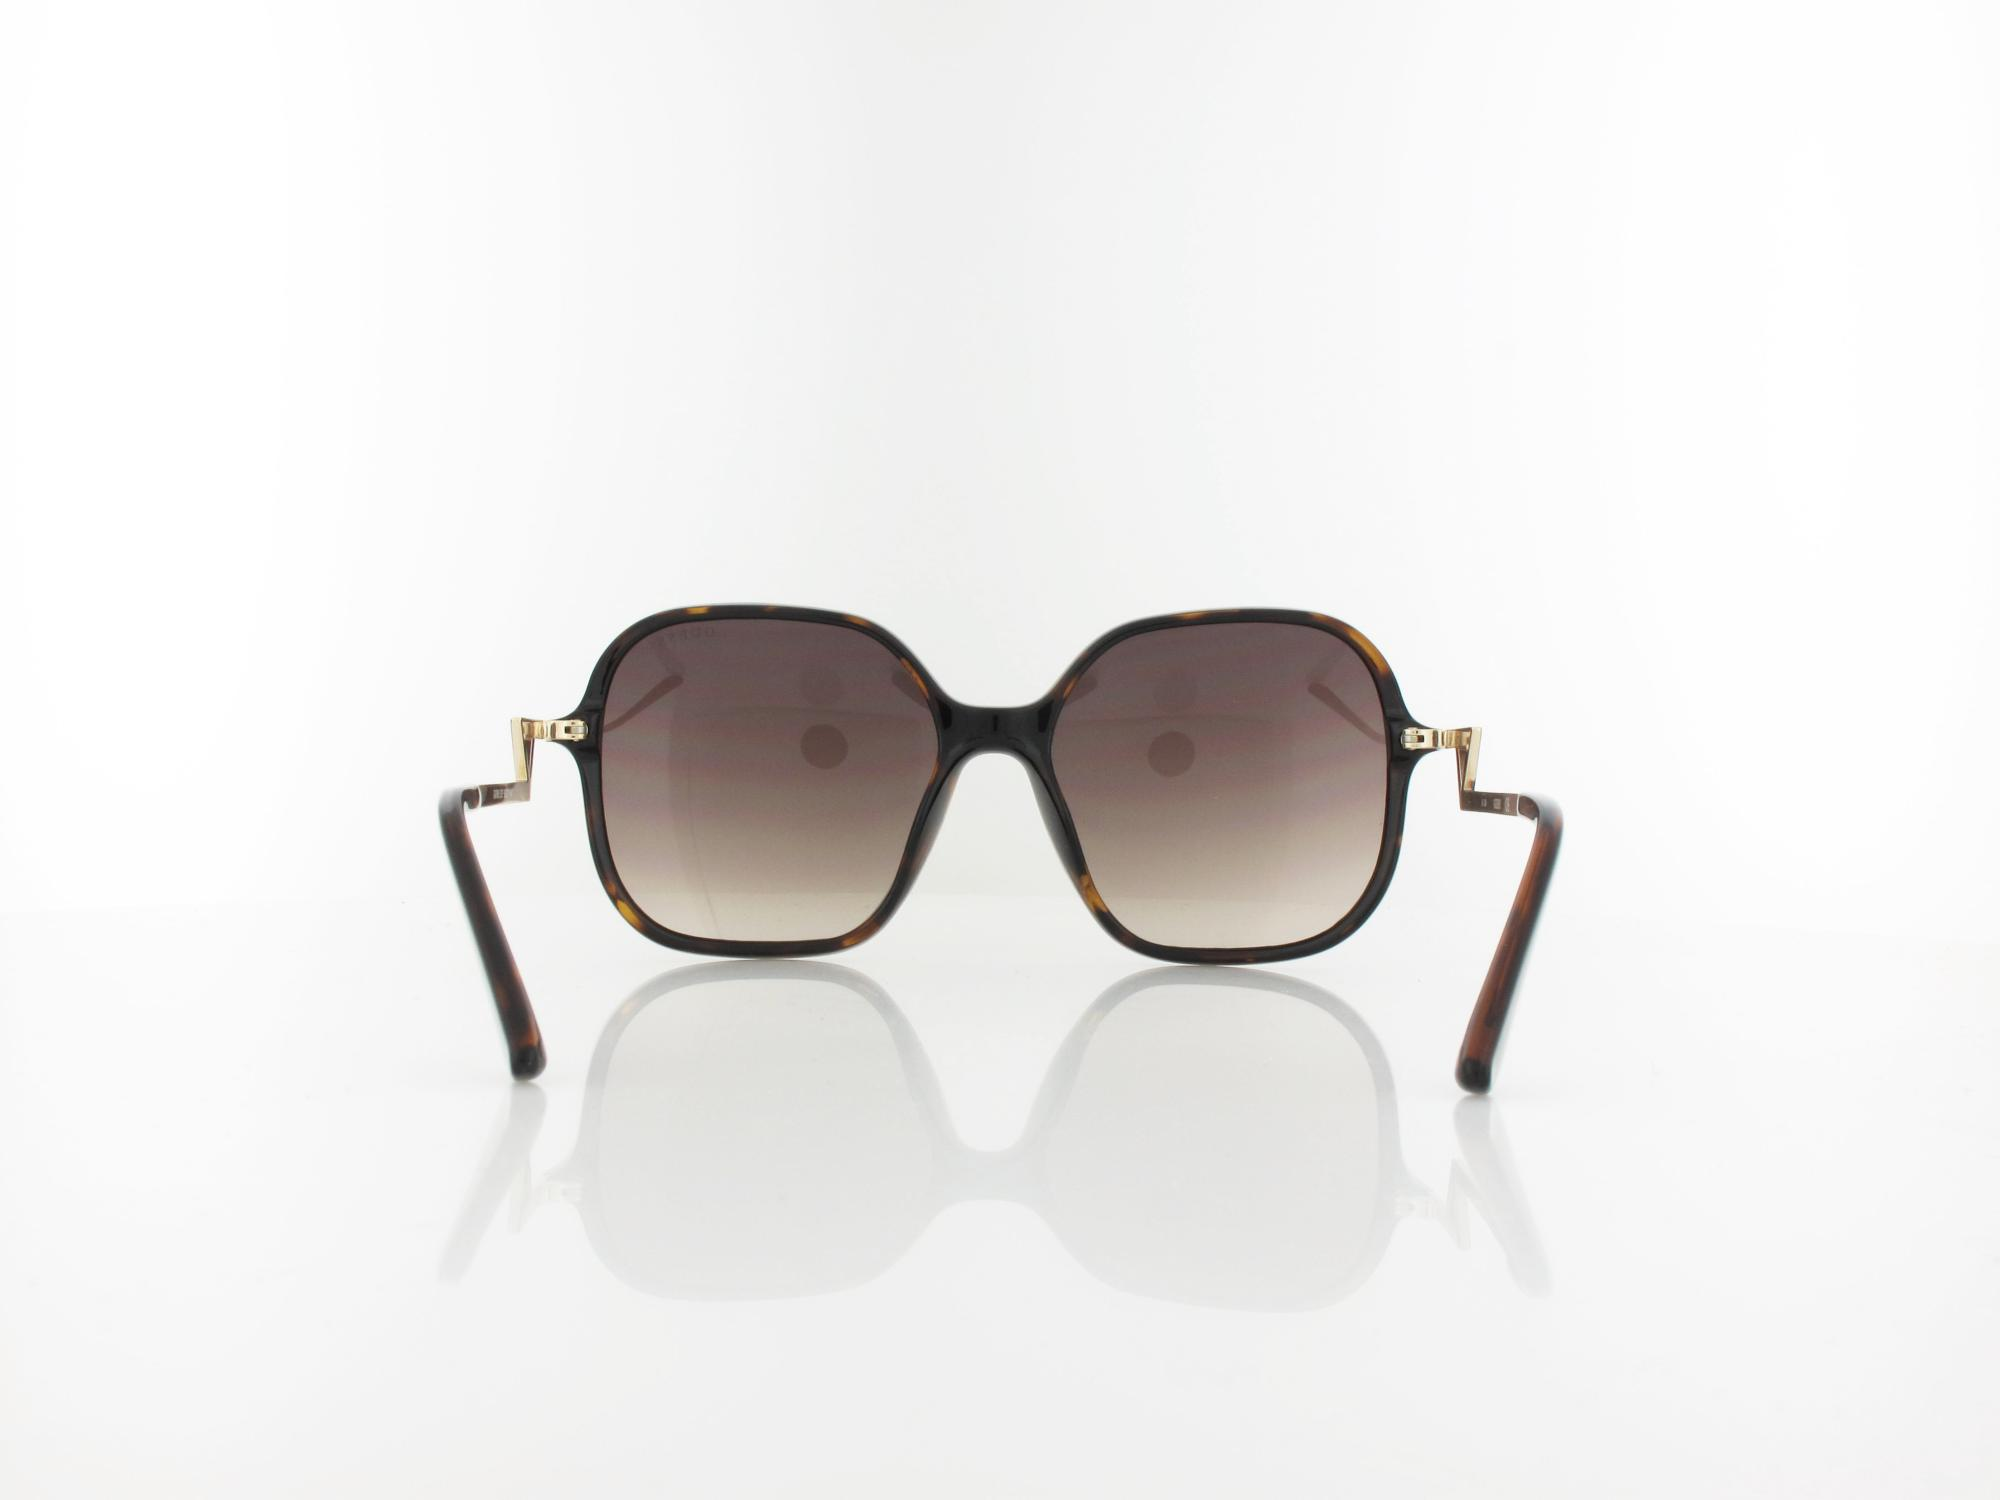 Guess | GU7605/S 52F 59 | dark havana / brown gradient